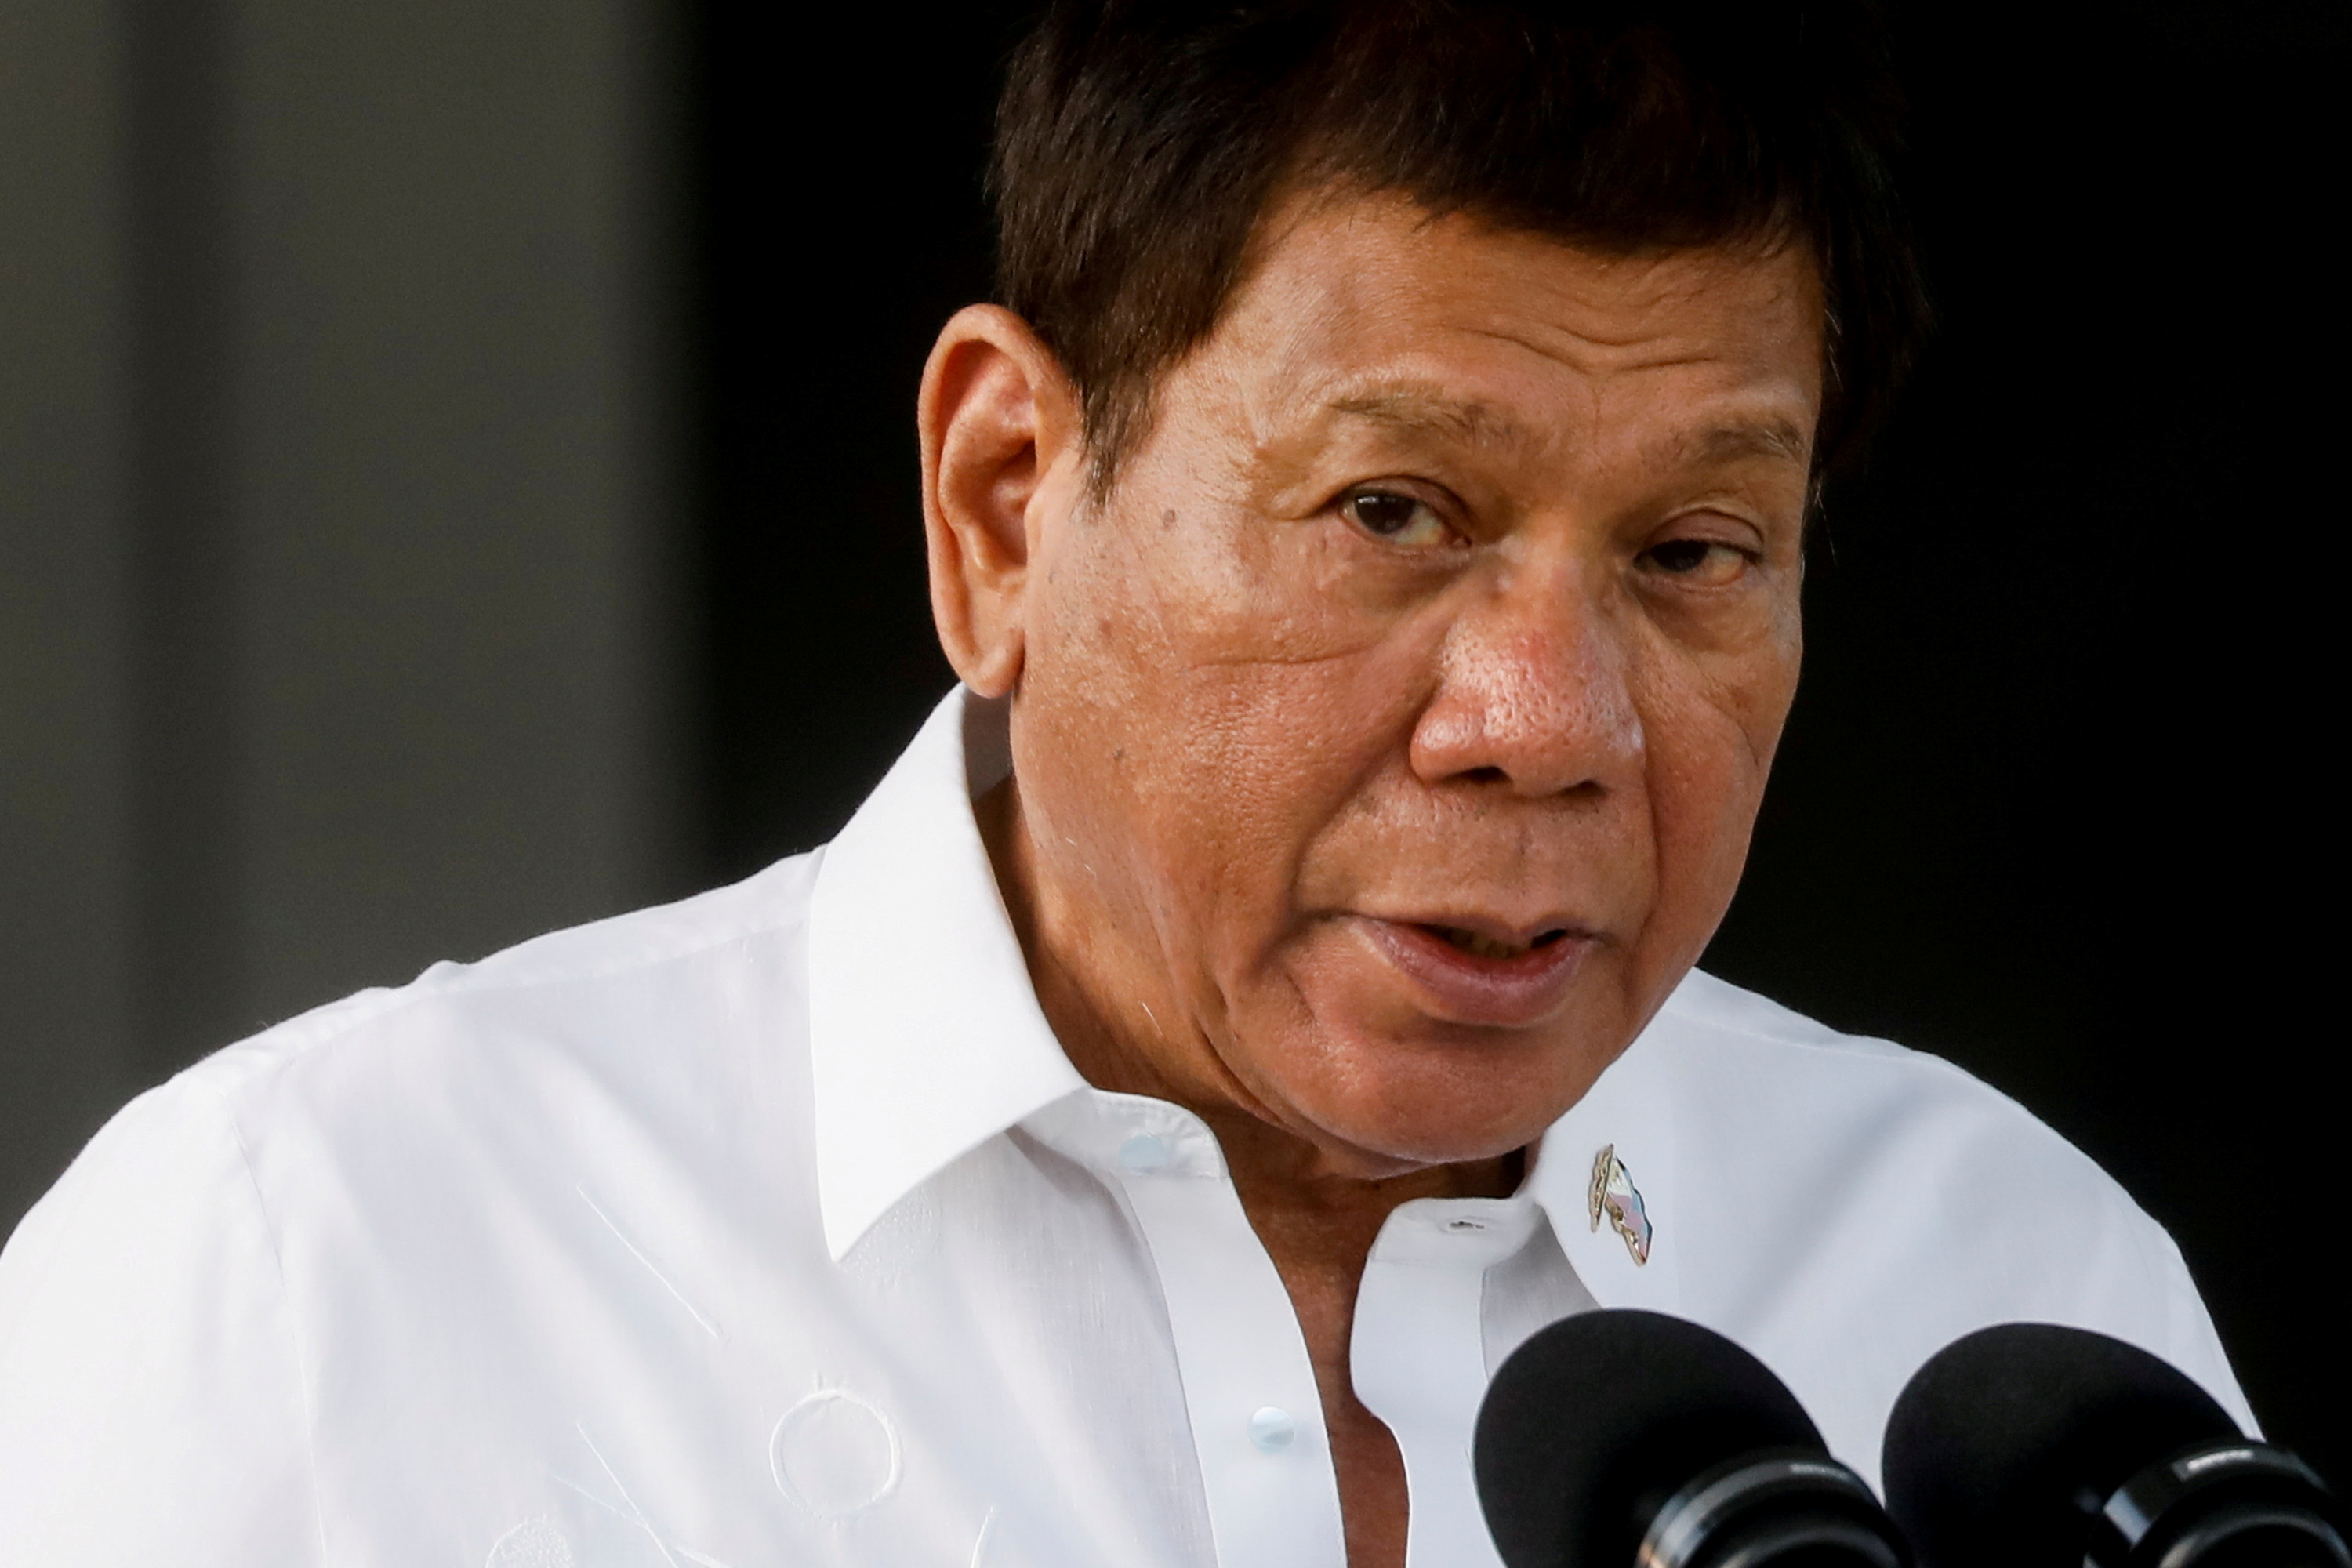 Philippine President Rodrigo Duterte speaks during the arrival ceremony for the first COVID-19 vaccines to arrive in the country, at Villamor Air Base in Pasay, Metro Manila, Philippines, February 28, 2021. REUTERS/Eloisa Lopez/File Photo